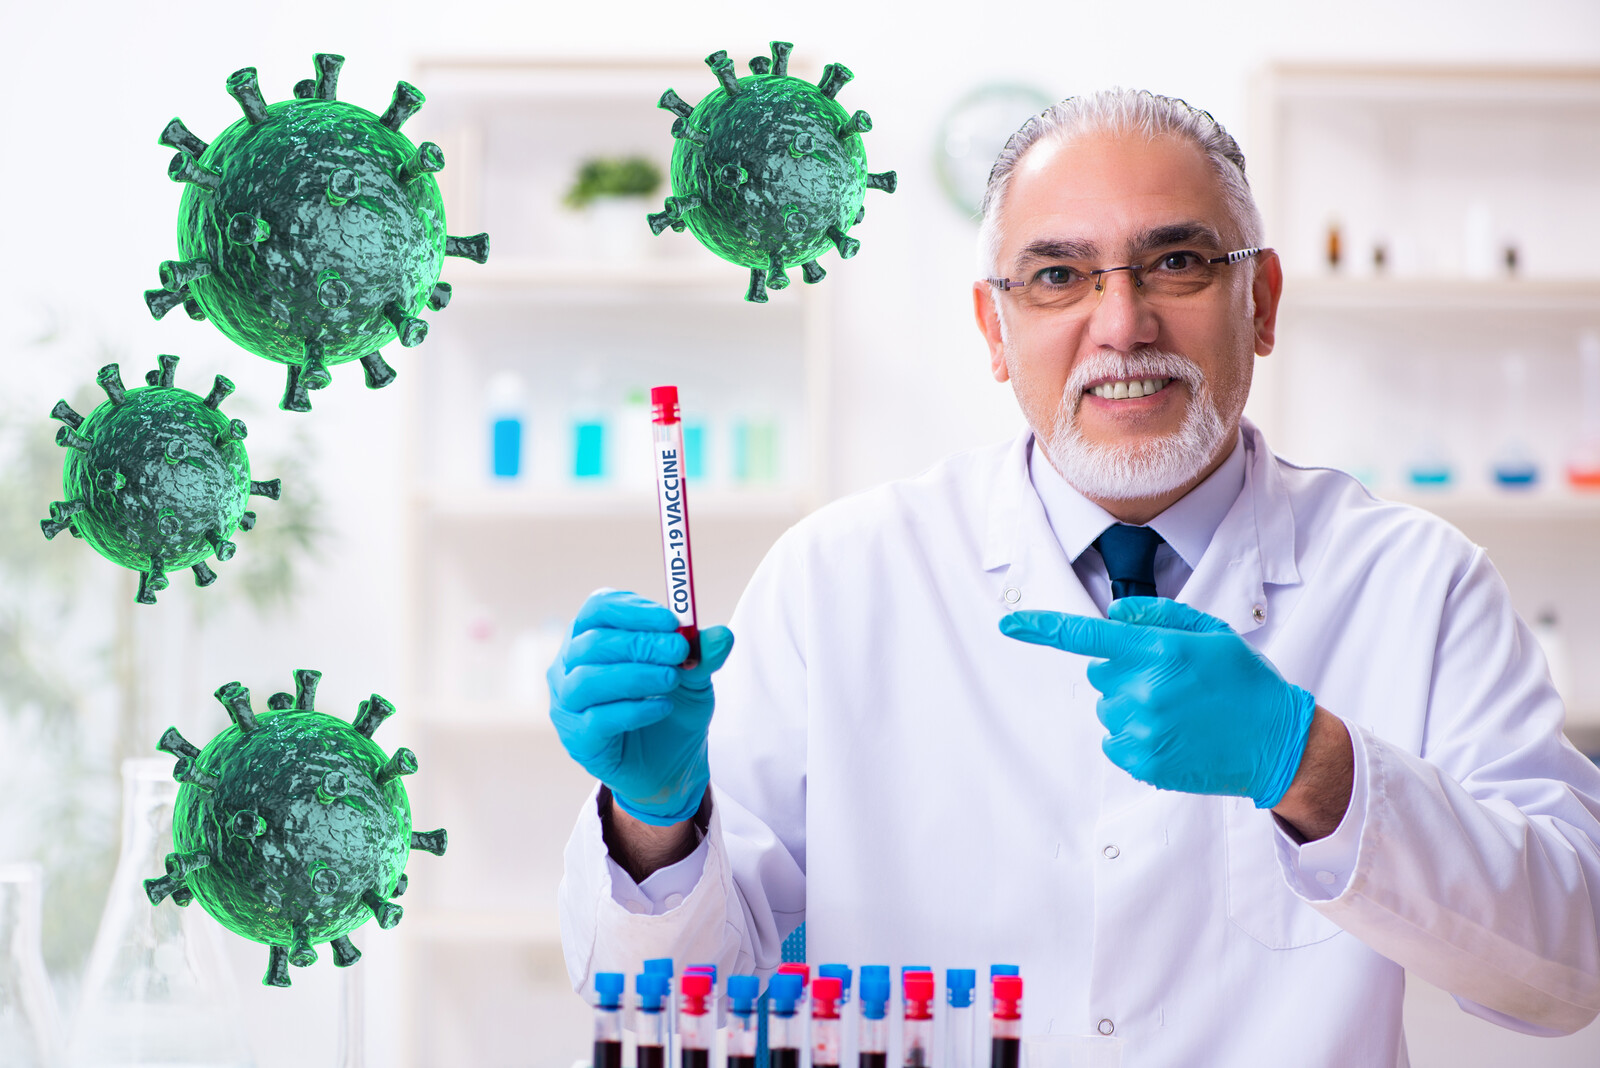 A senior doctor in a lab holding up a vile that says COVID-19 vaccine, on the left are green virus molecules floating over the photo